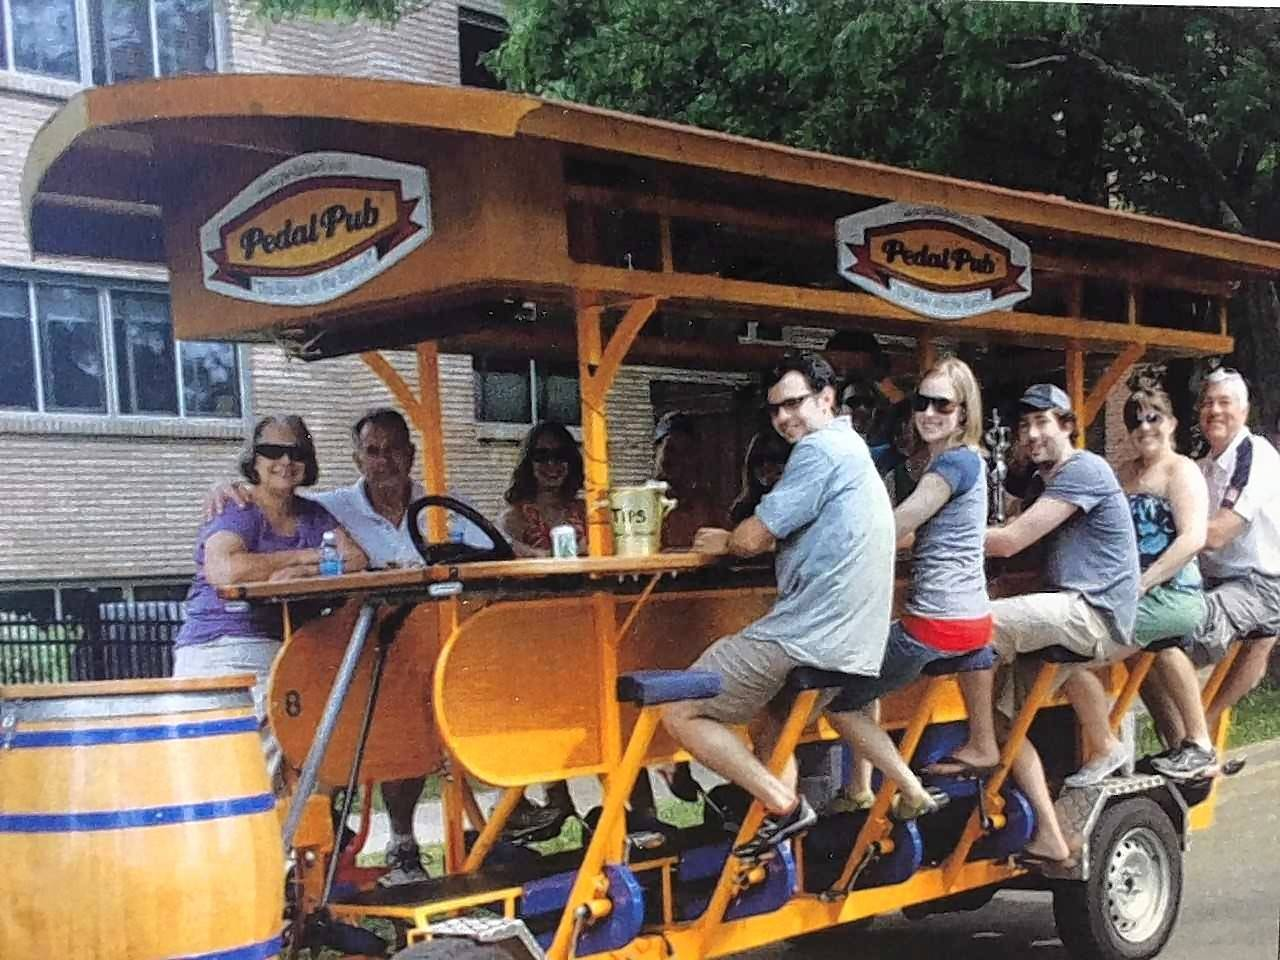 Will Naperville allow BYOB for a Pedal Pub in town?